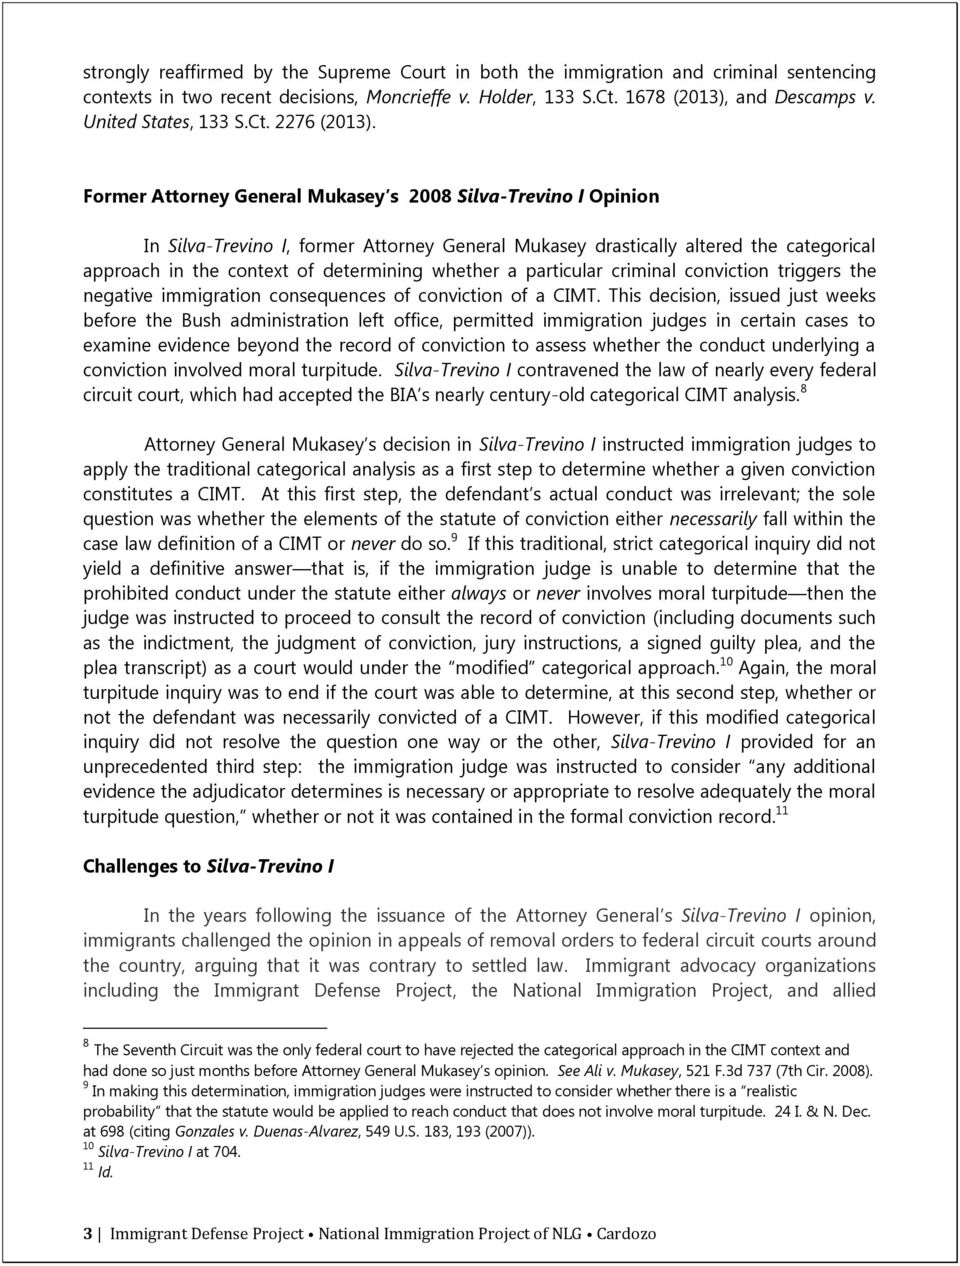 Former Attorney General Mukasey s 2008 Silva-Trevino I Opinion In Silva-Trevino I, former Attorney General Mukasey drastically altered the categorical approach in the context of determining whether a